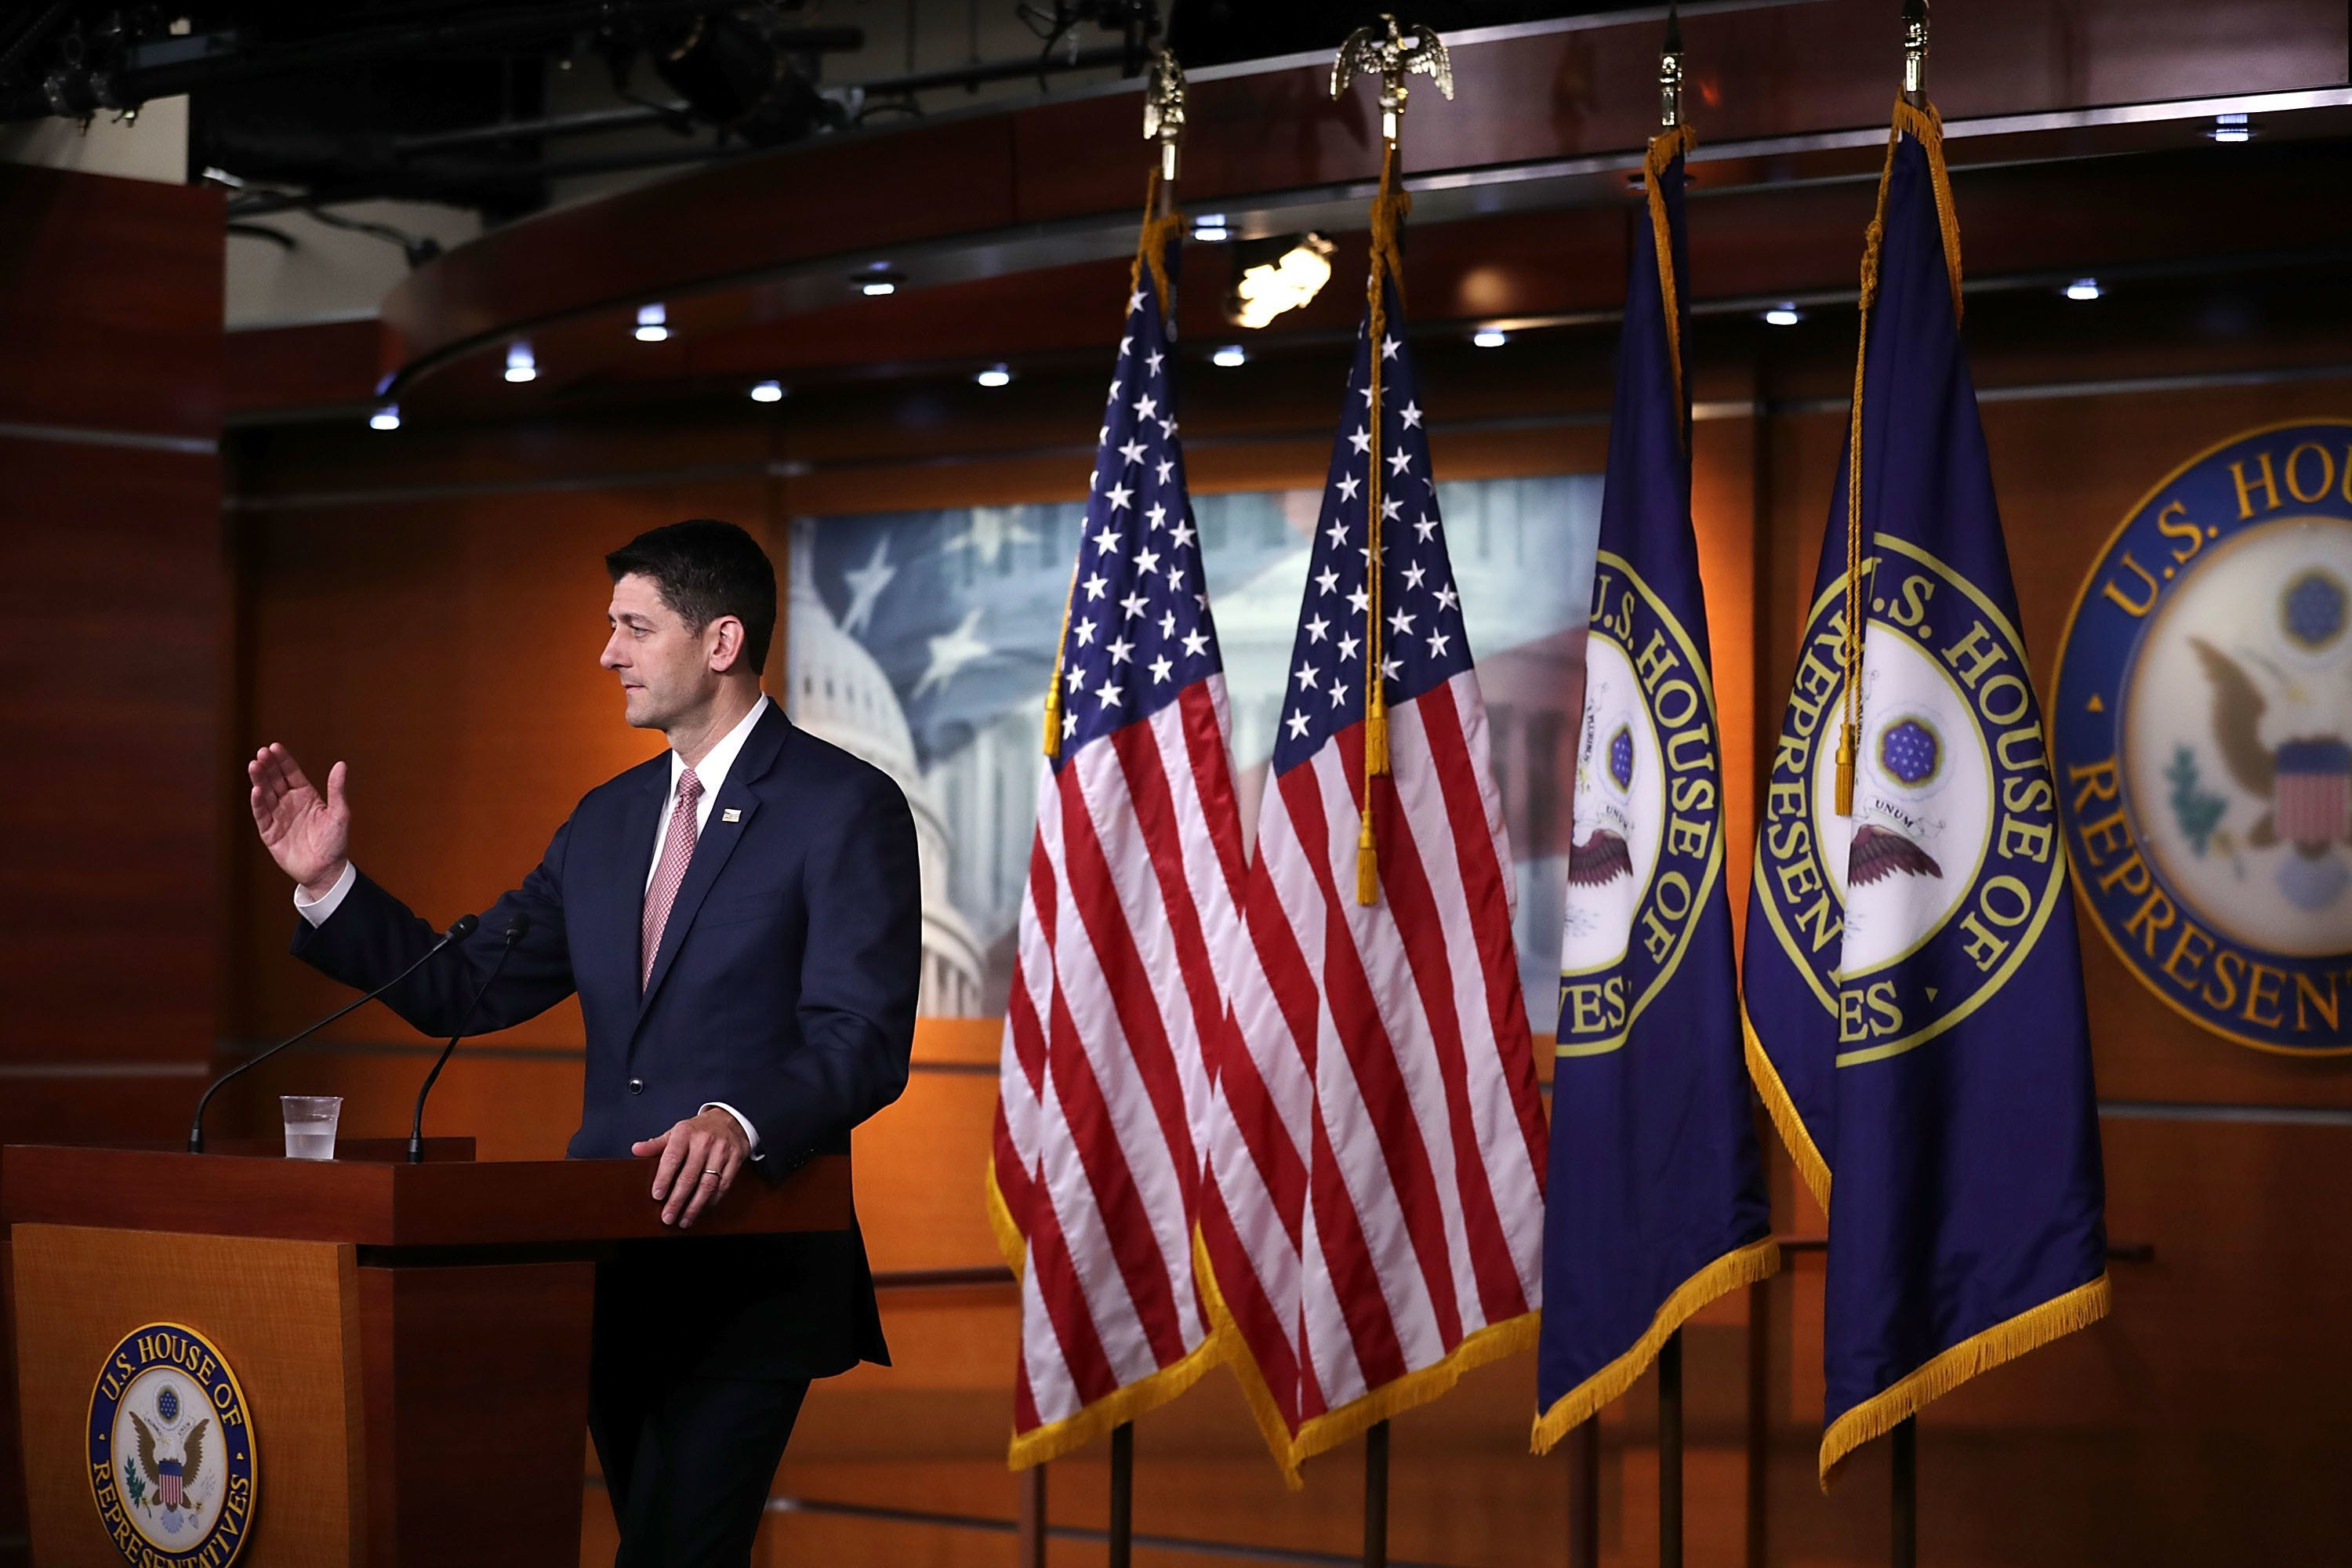 WASHINGTON, DC - MAY 10:  Speaker of the House Paul Ryan (R-WI) calls on reporters during his weekly news conference at the U.S. Capitol Visitors Center May 10, 2018 in Washington, DC. Among other subjects, Ryan answered questions about an attempt by some GOP members of Congress to force votes on immigration legislation before this year's midterm elections. (Photo by Chip Somodevilla/Getty Images)